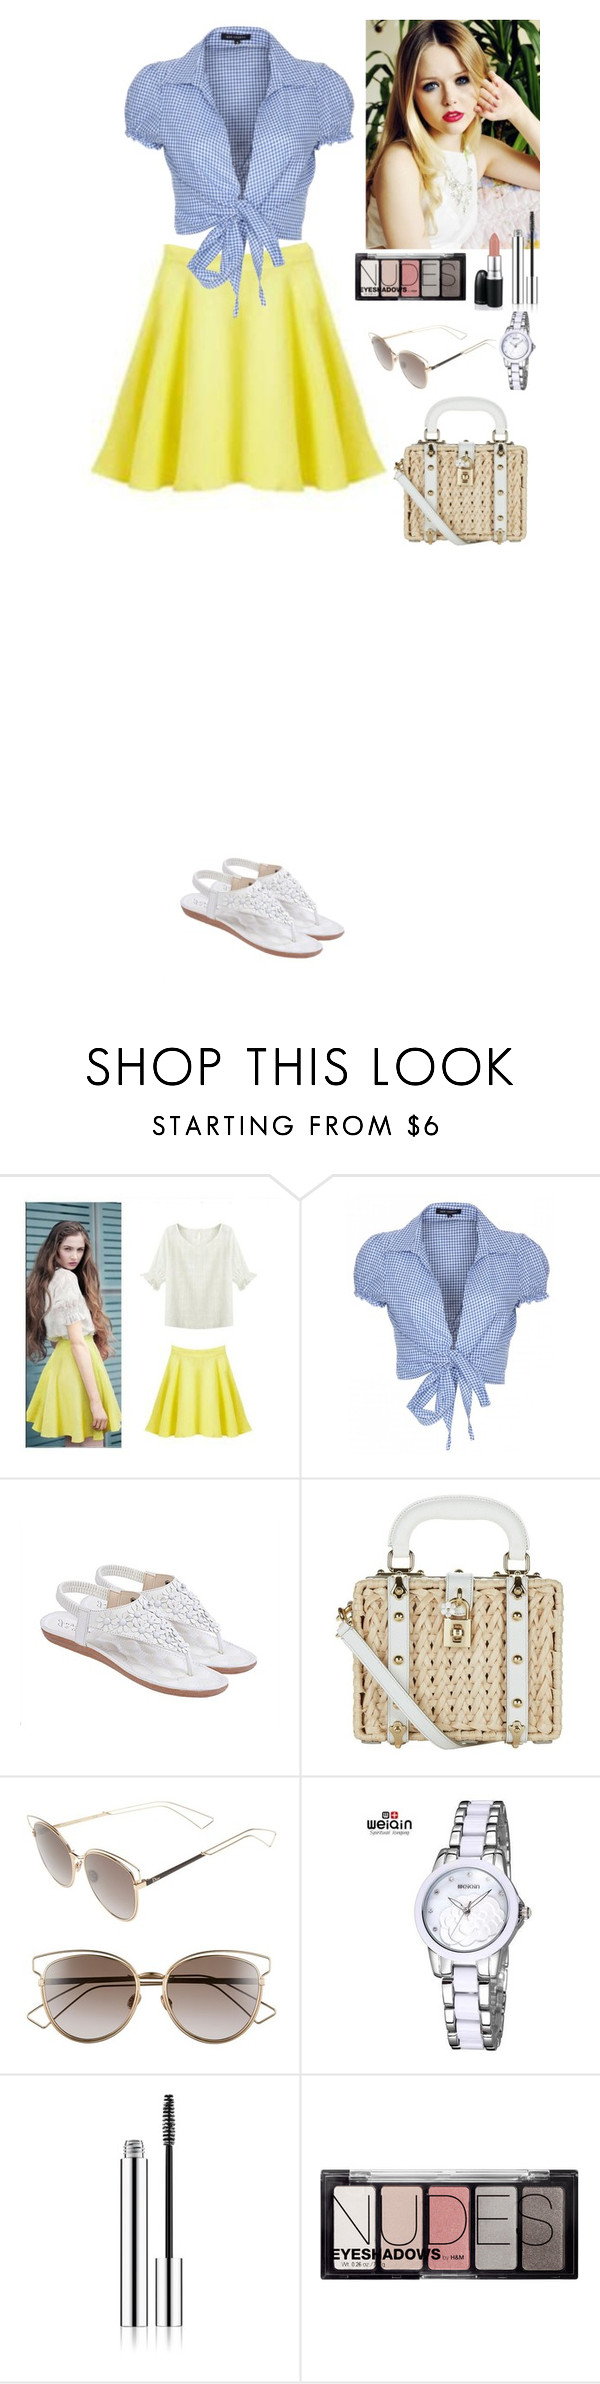 """""""Summer outfit TOMTOP"""" by eliza-redkina ❤ liked on Polyvore featuring QED London, Yves Saint Laurent, Dolce&Gabbana, Christian Dior, H&M, David Jones, Summer, outfit, like and look"""